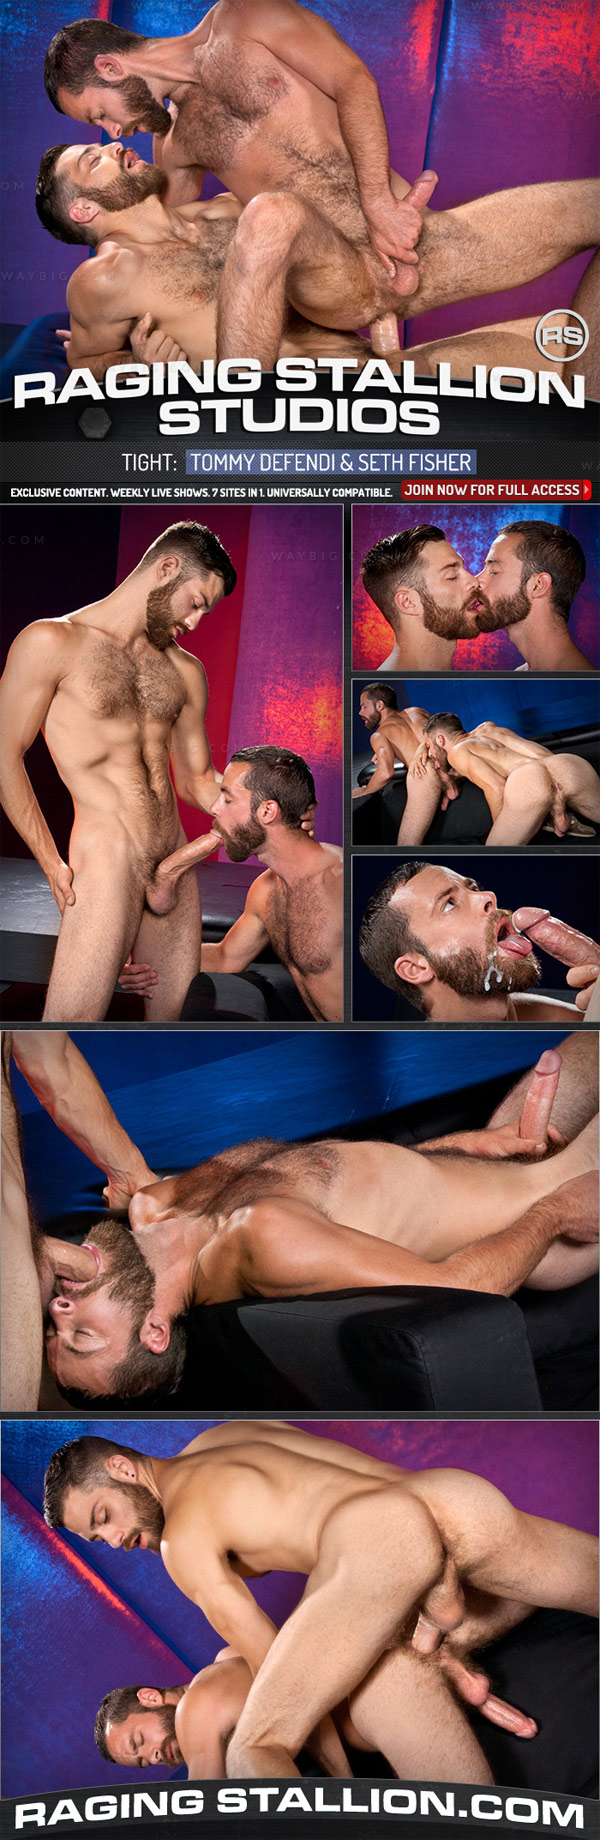 Tight (Tommy Defendi & Seth Fisher) (Scene 3) at Raging Stallion